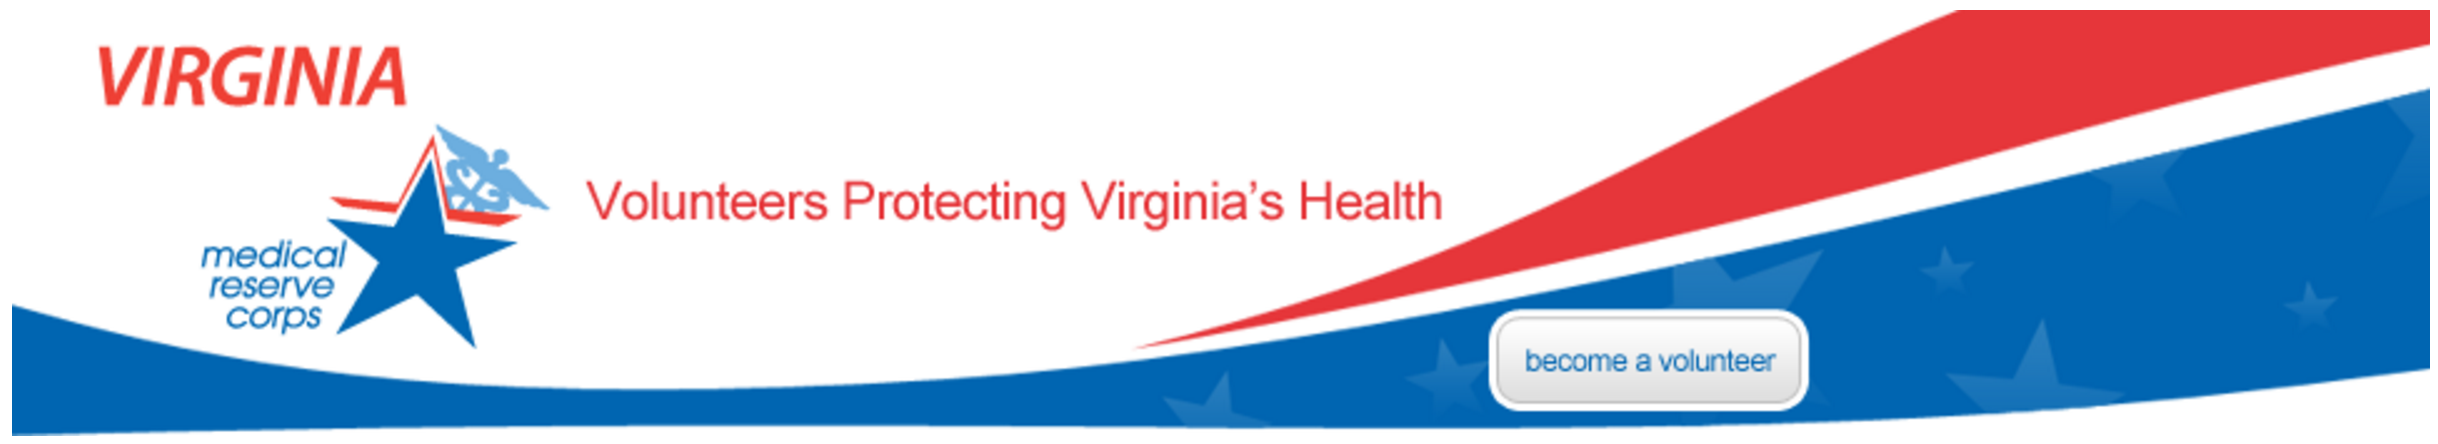 Virginia Medical Reserve Corp Banner